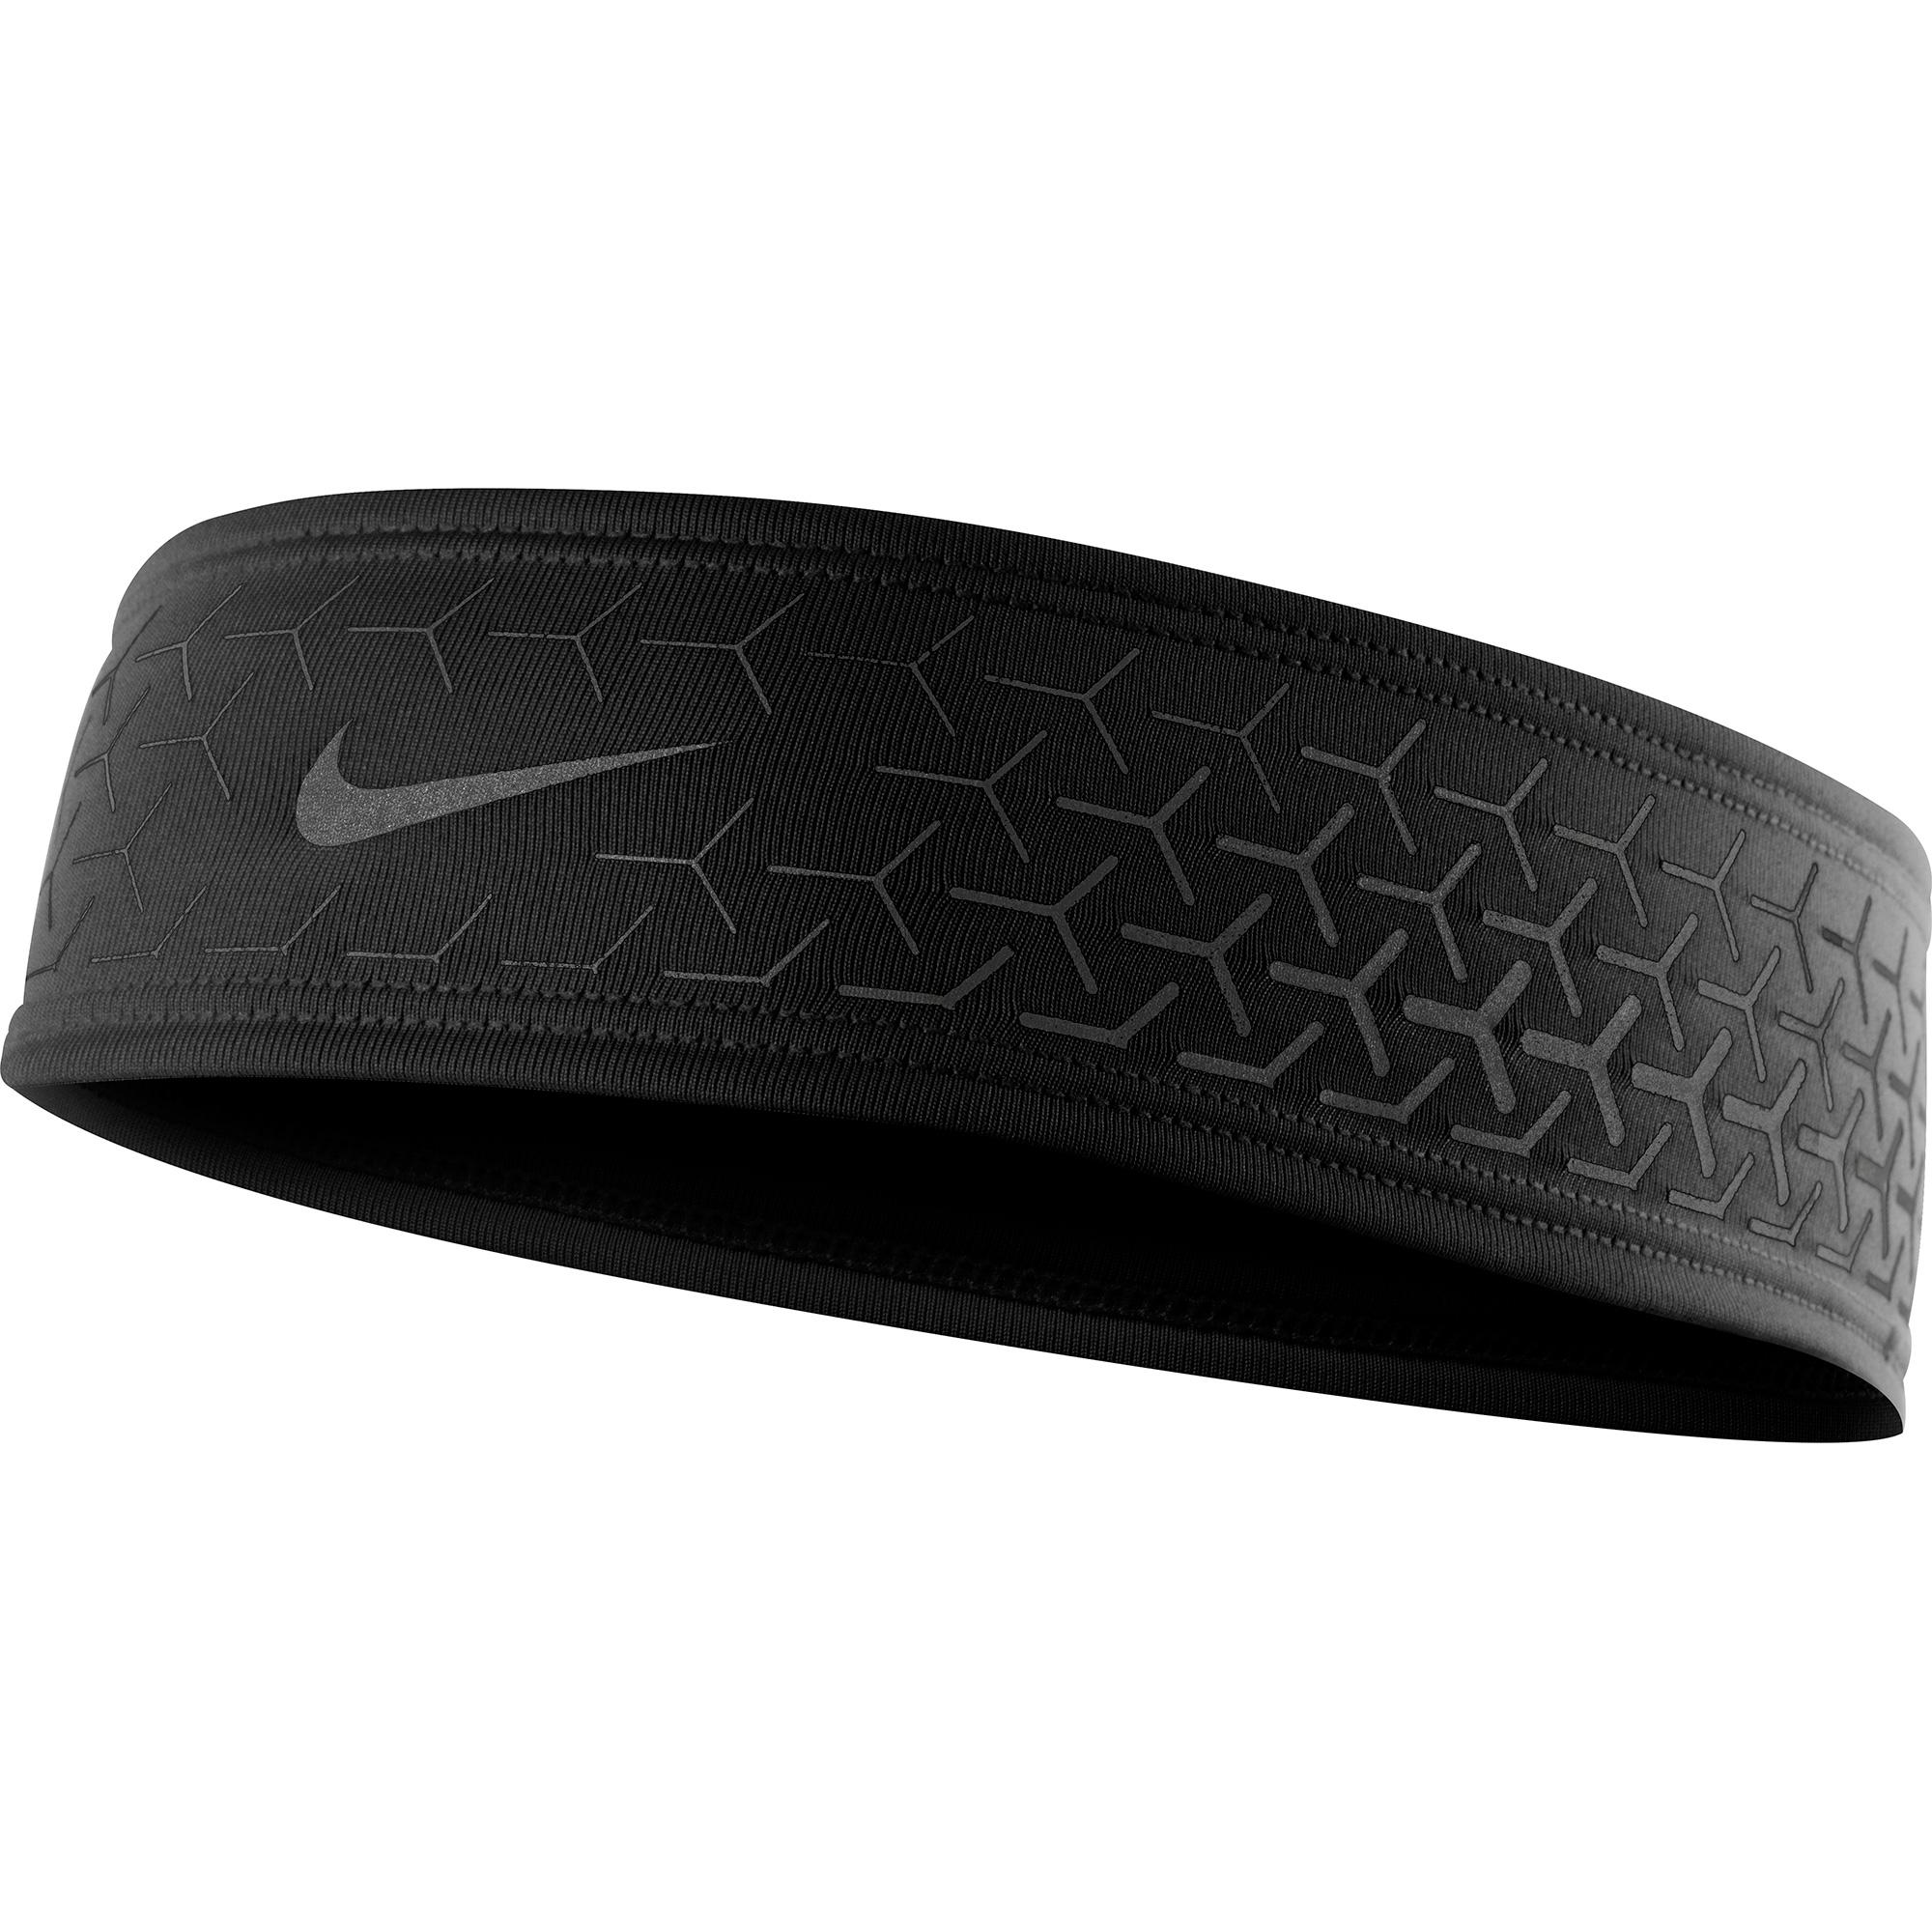 Nike Dri Fit 360 Headband Black Tennisnuts Com